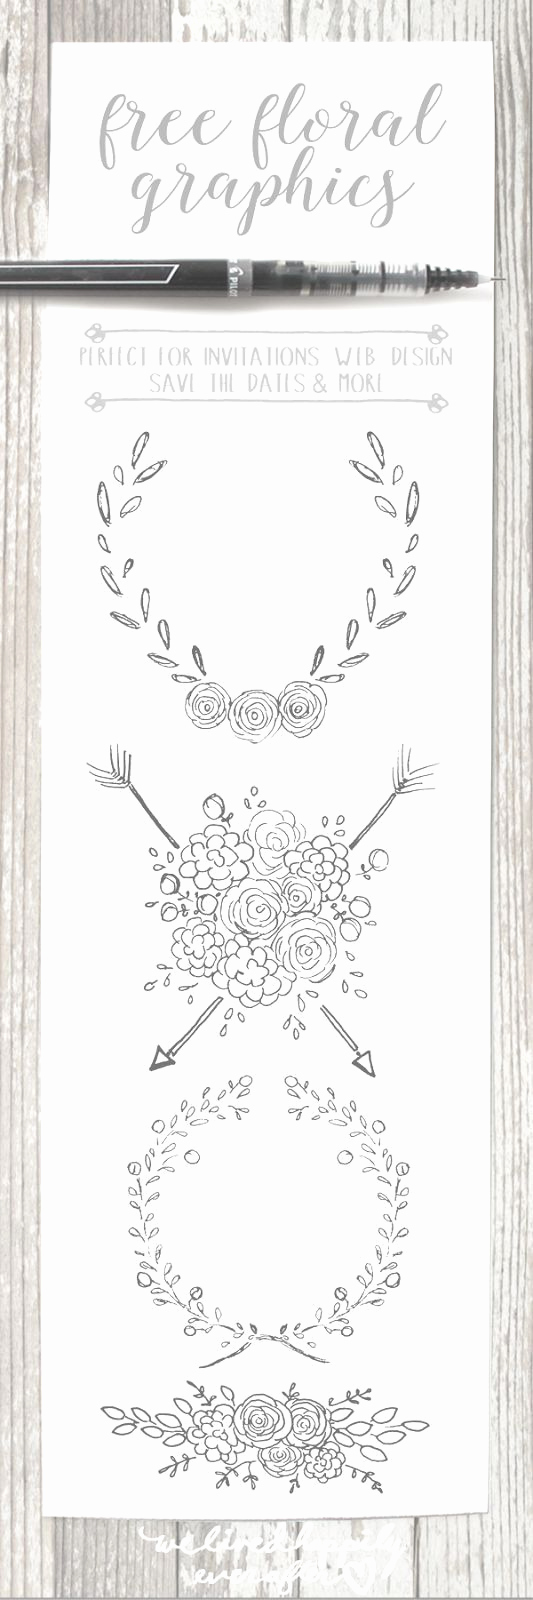 Cricut Wedding Invitation Templates Beautiful 25 Best Ideas About Cricut Wedding Invitations On